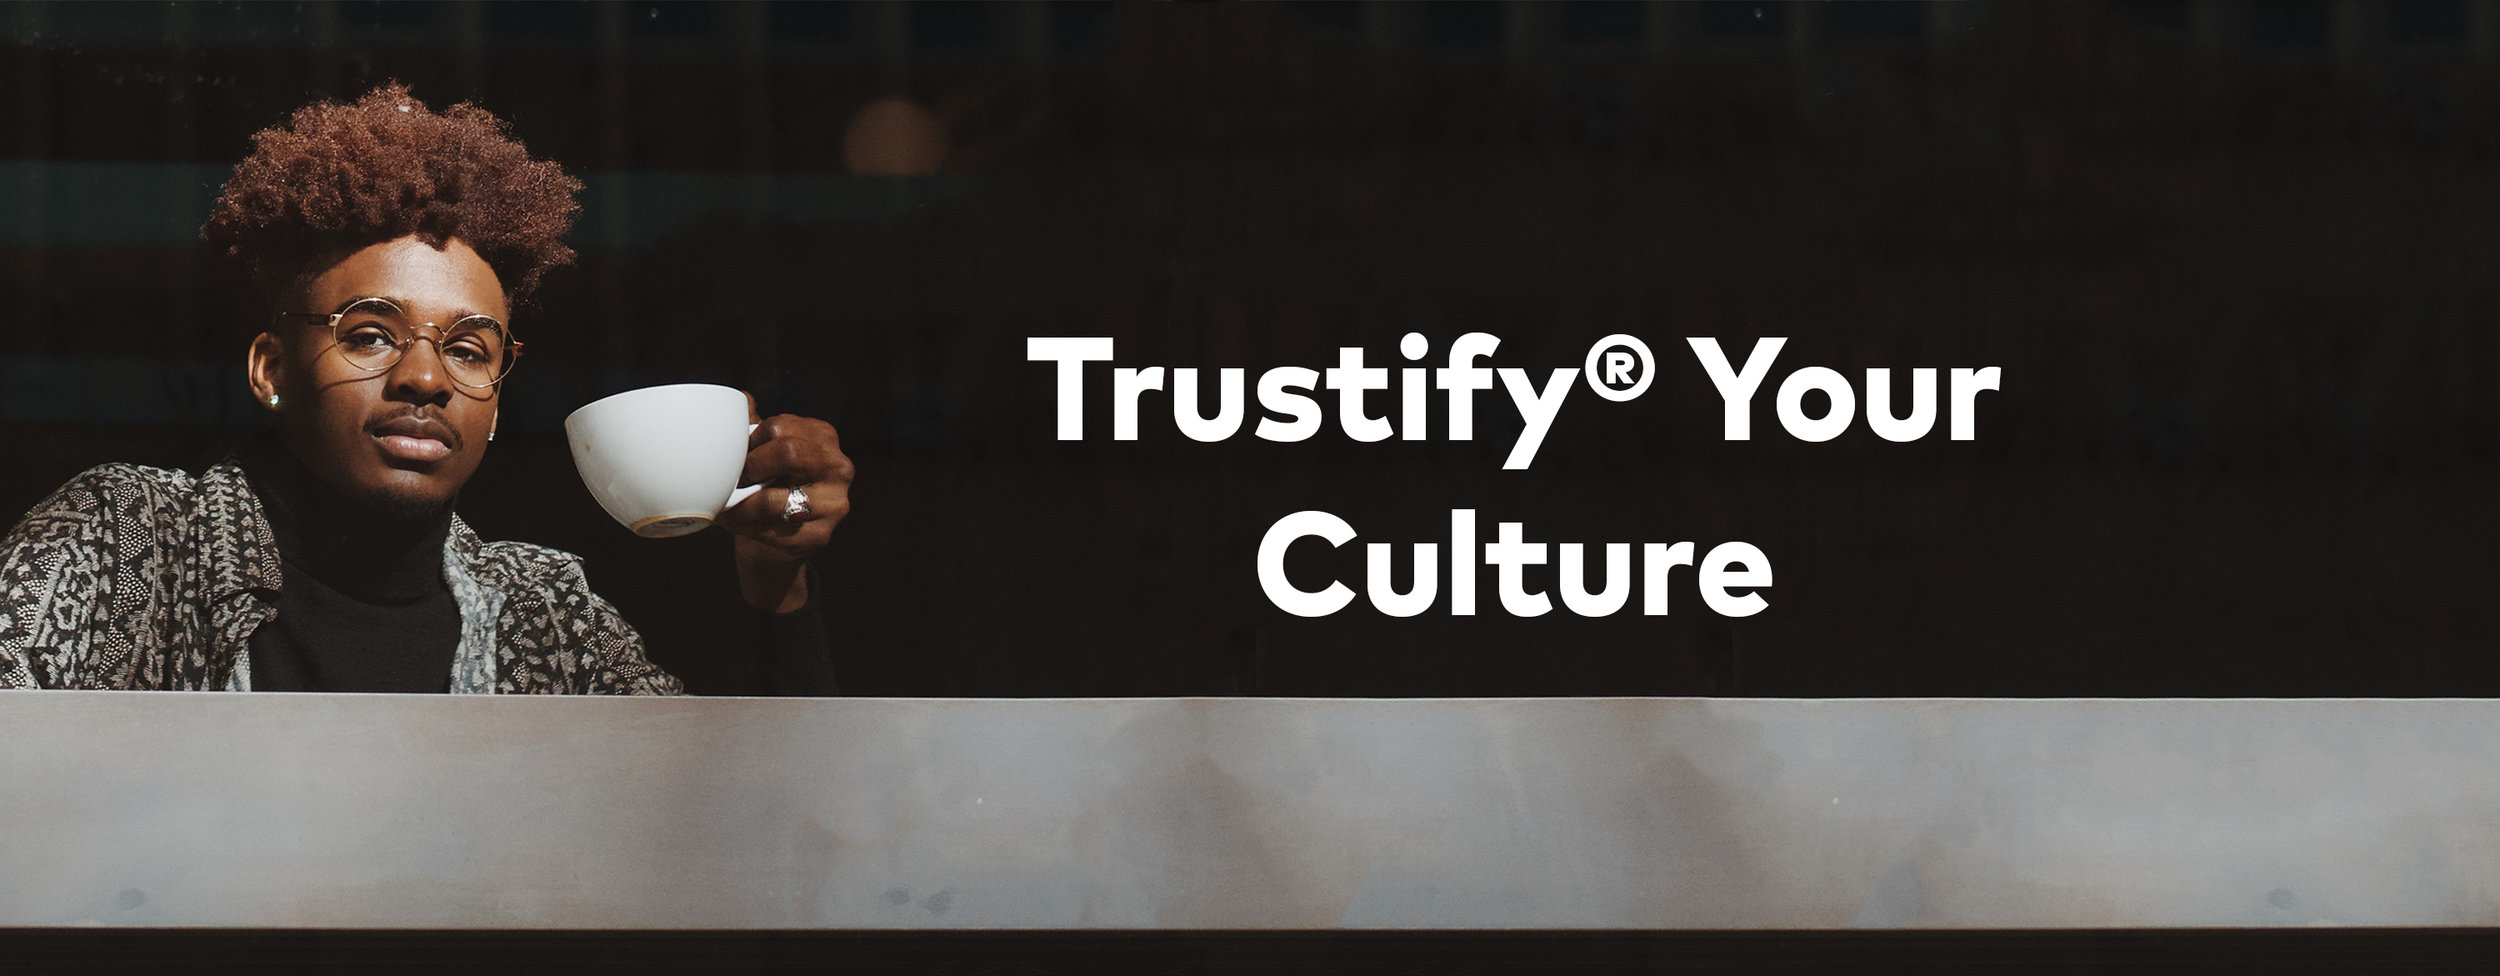 Mext_Consulting_Firm_Melbourne_Trust_Trustify_Your_Culture_Banner.jpg